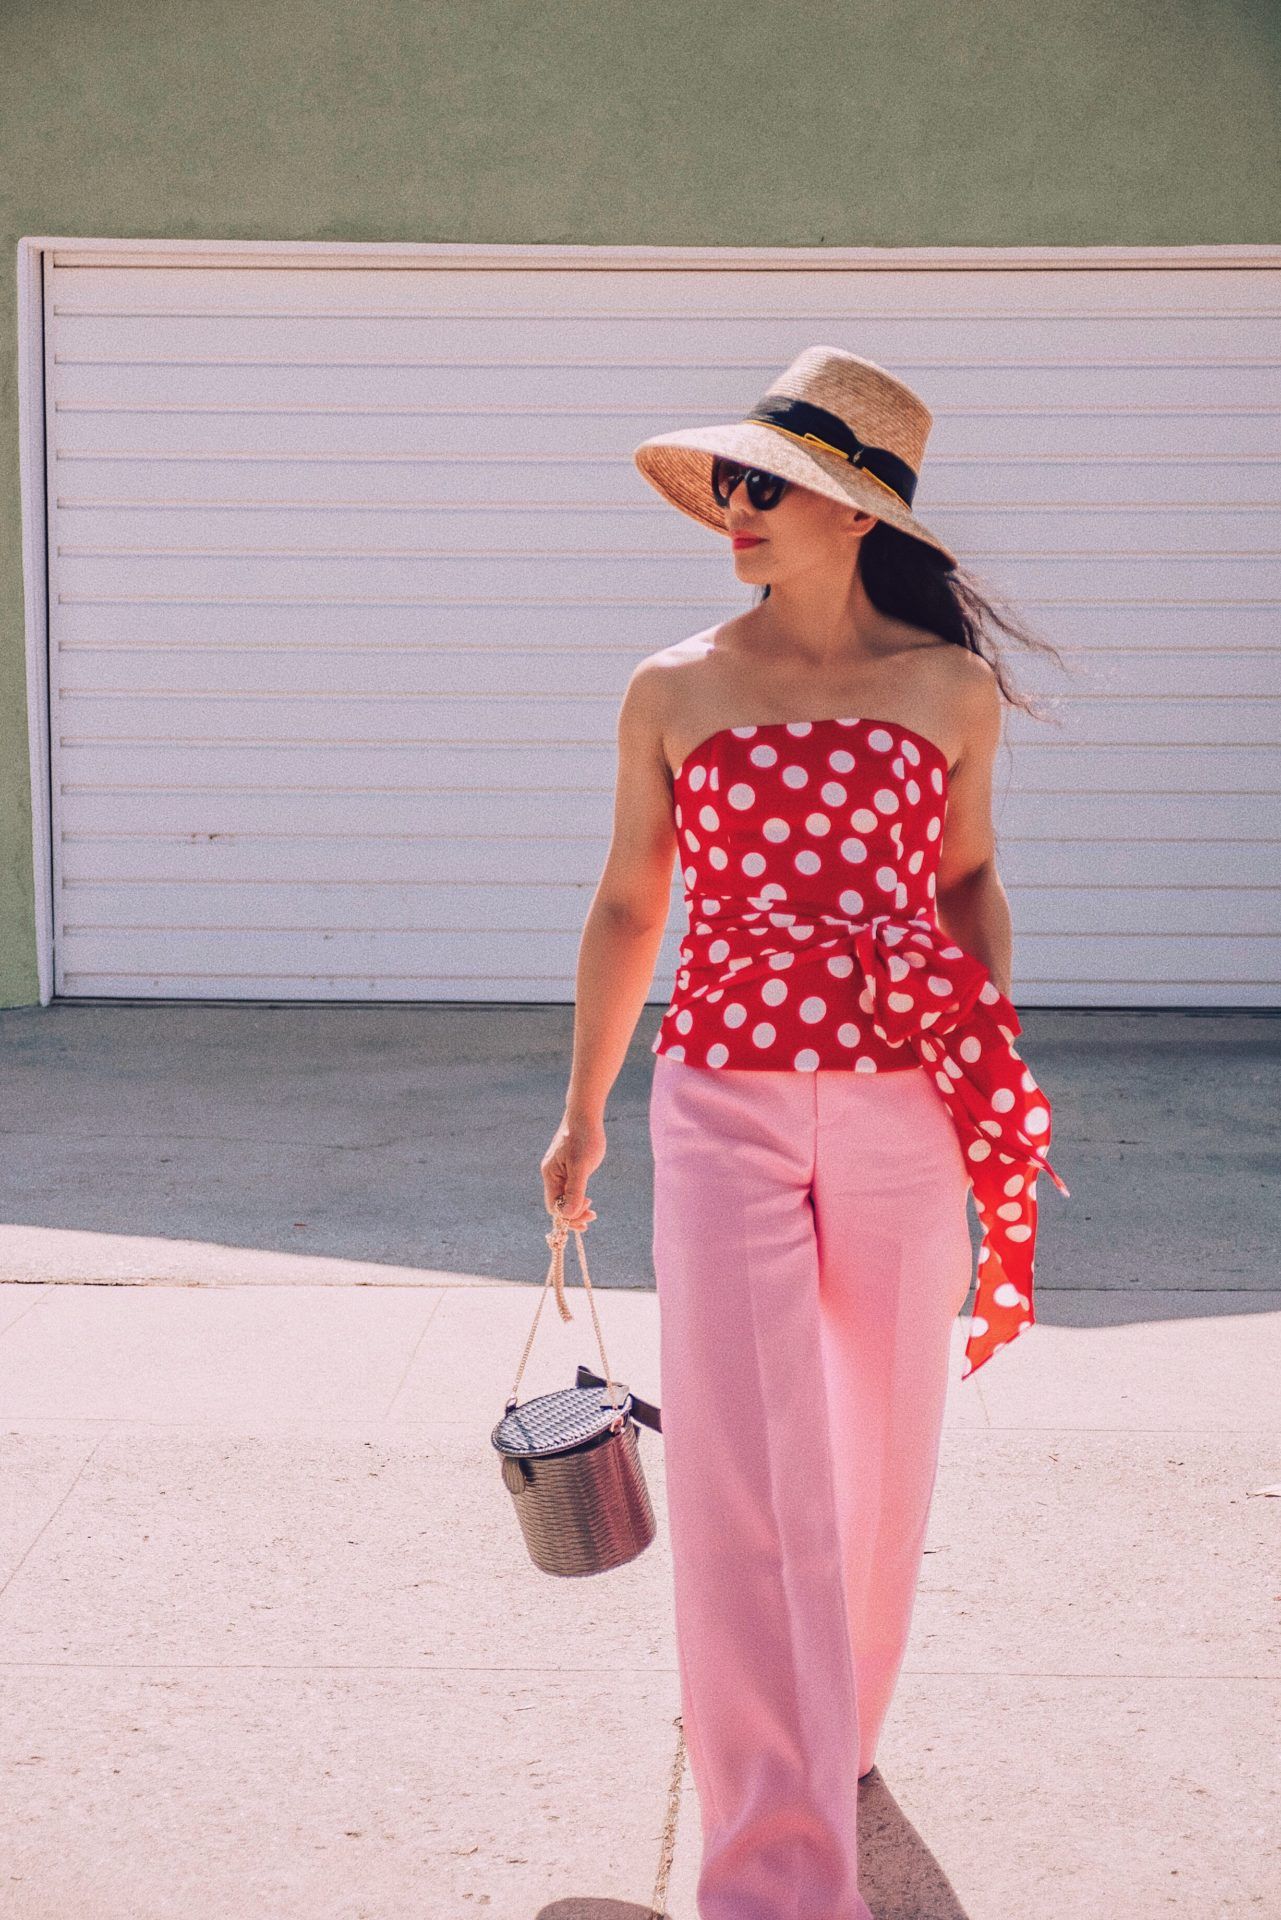 Todays Everyday Fashion: Pink and Red — Js Everyday Fashion